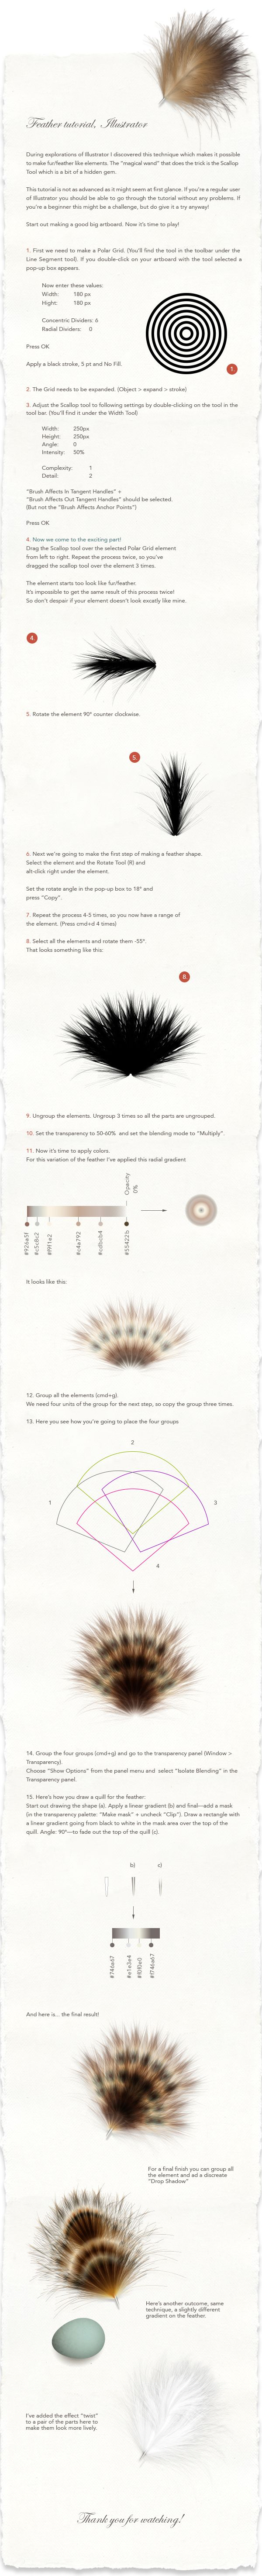 Feather Tutorial, Illustrator by Maria Grønlund, via Behance